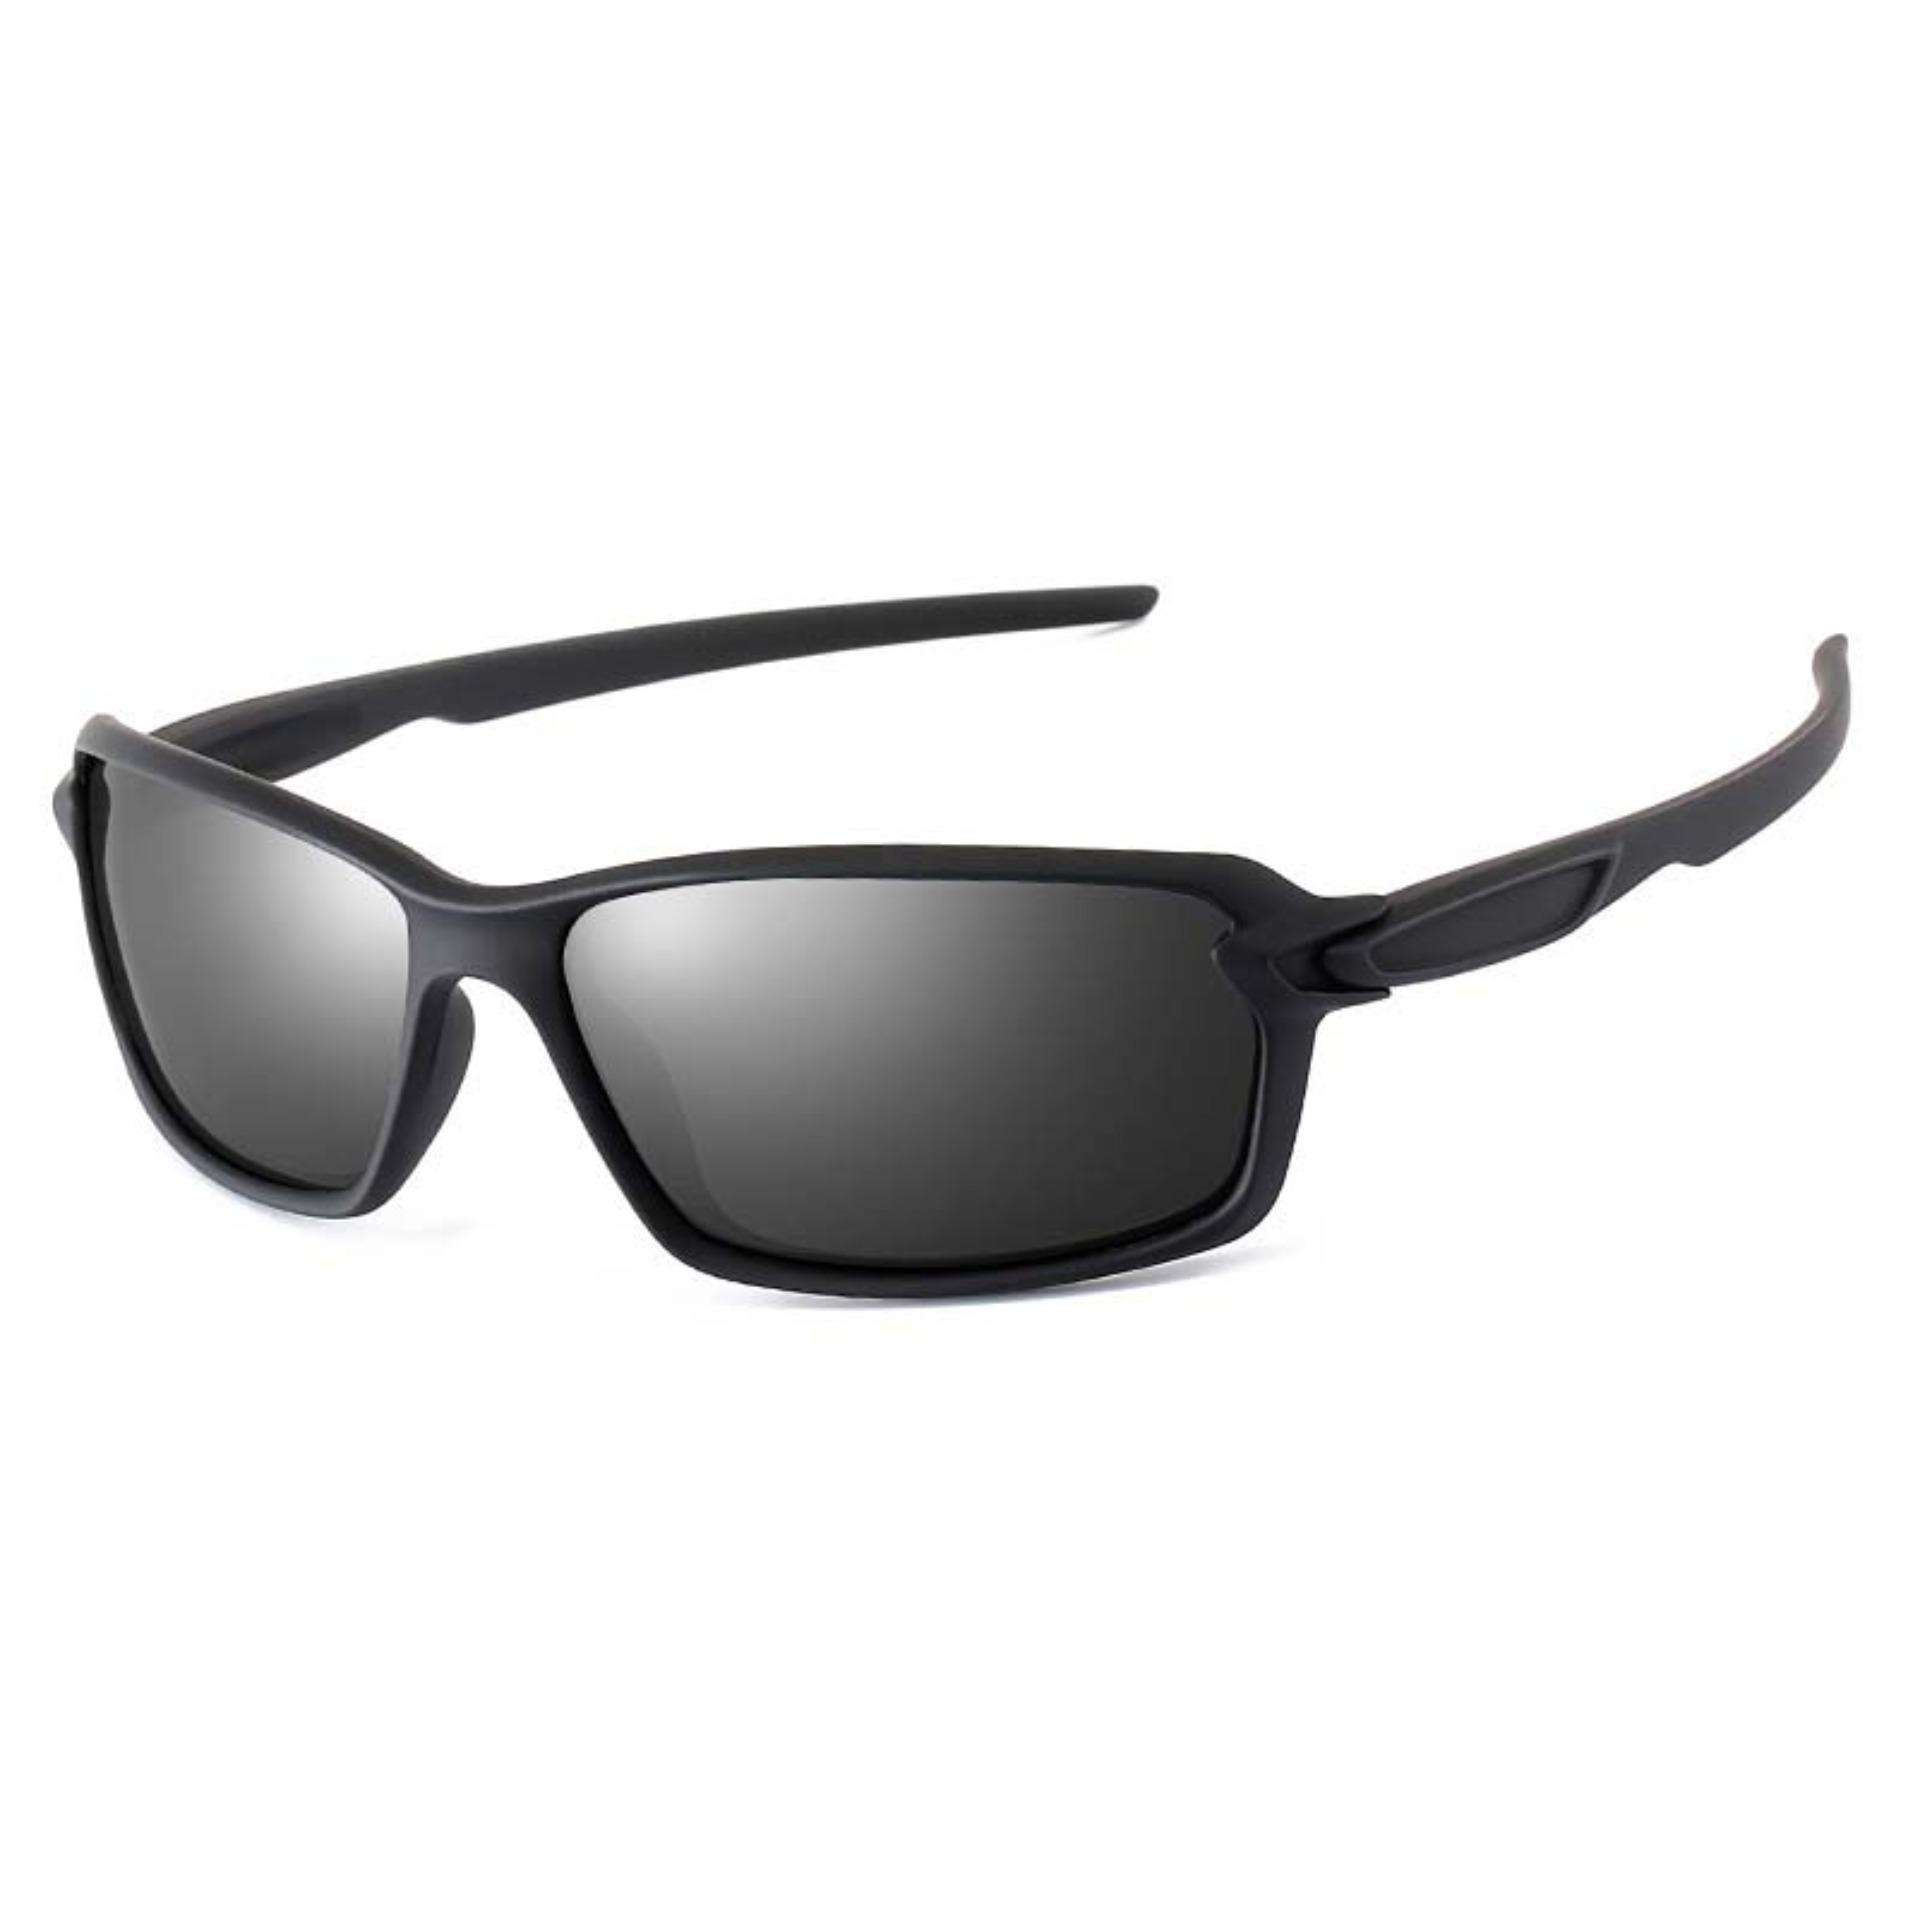 bf0bfdeb442a Sunglasses For Men for sale - Mens Sunglasses online brands